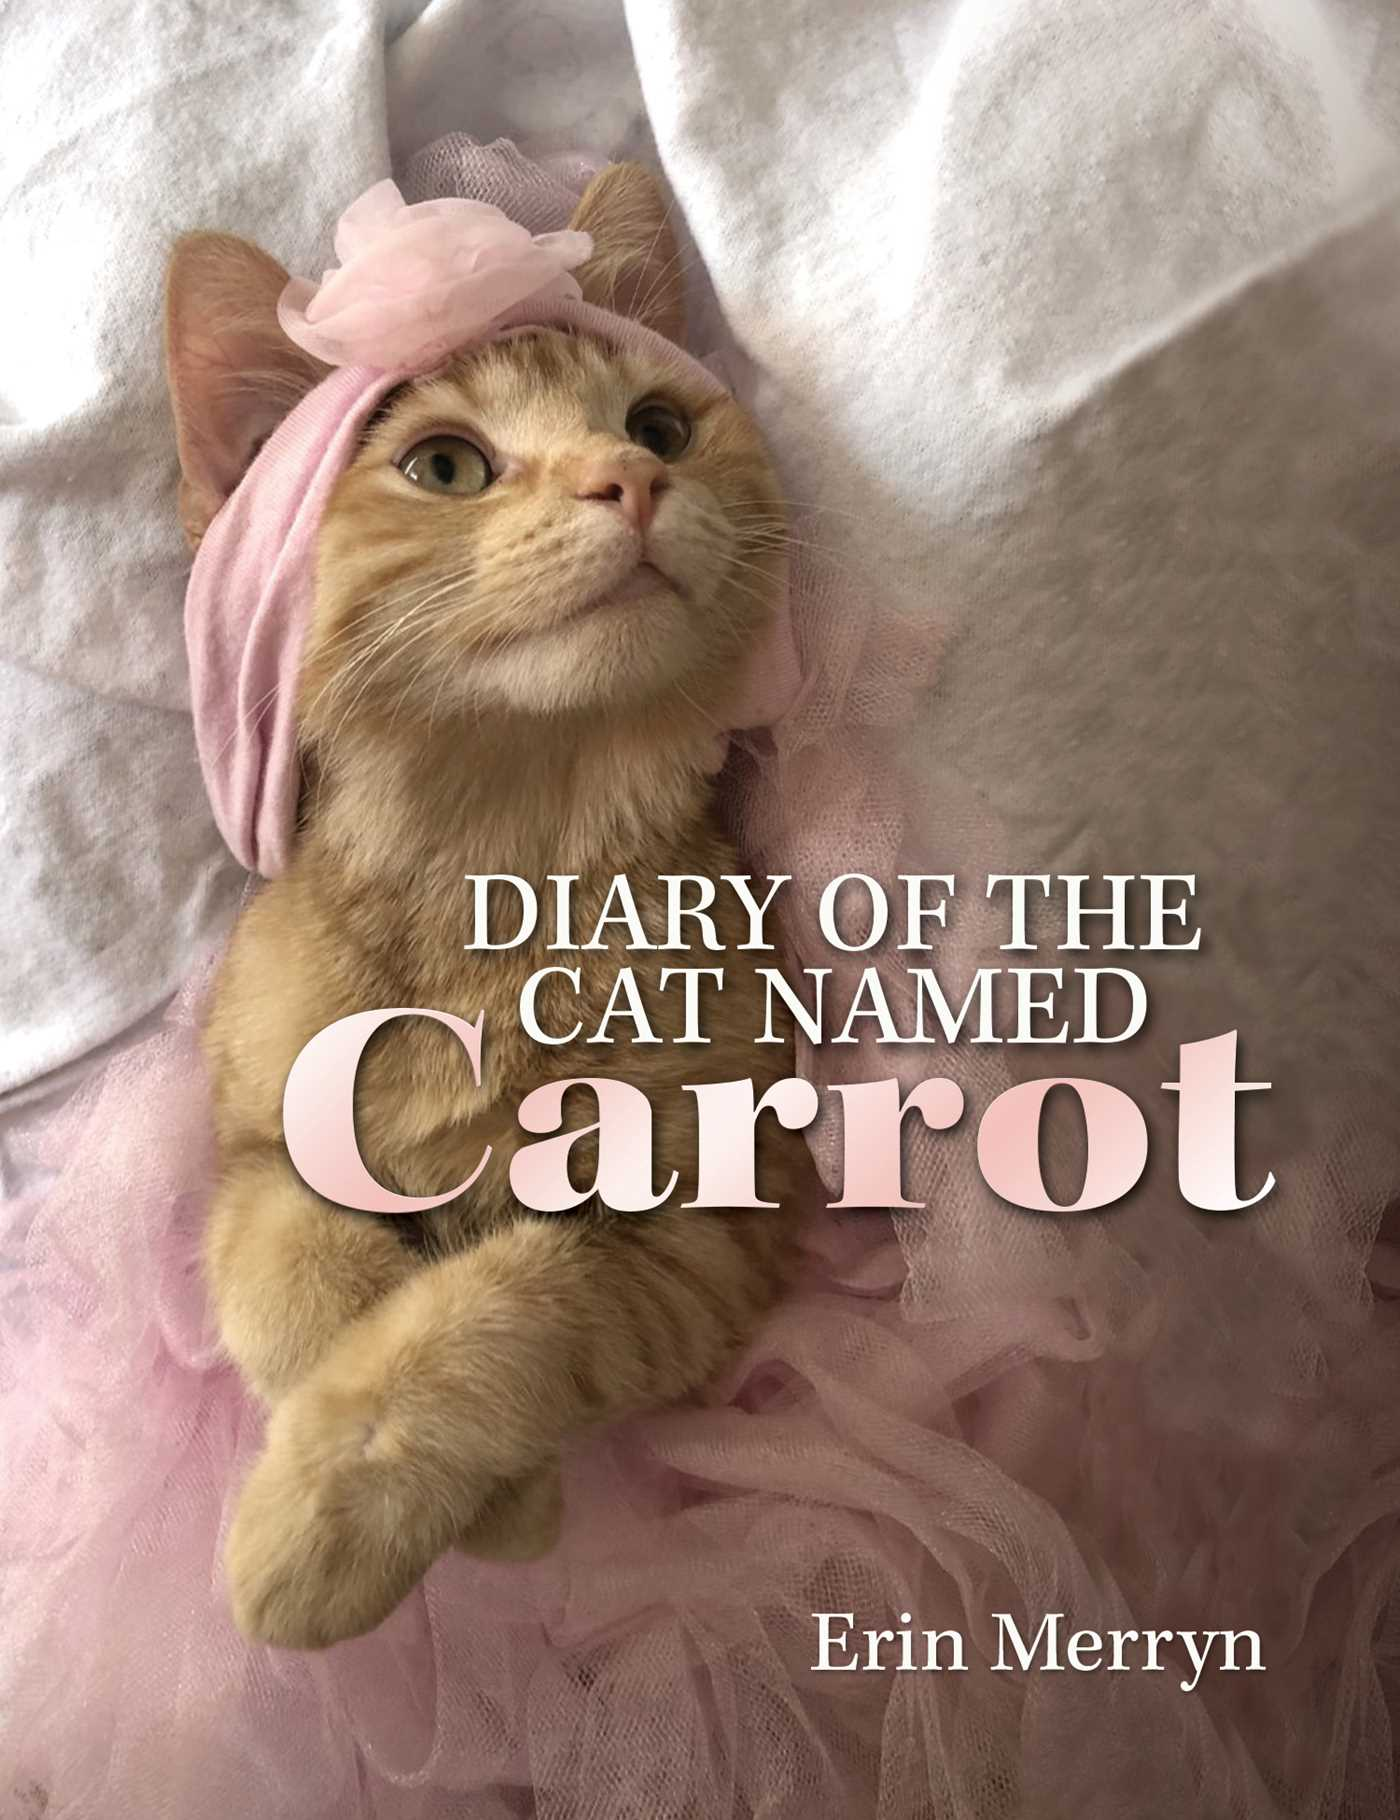 Diary of the Cat Named Carrot, Erin Merryn, Cat, Tutu, Pink, Cute, Diary, Non-fiction, Cats, Family,